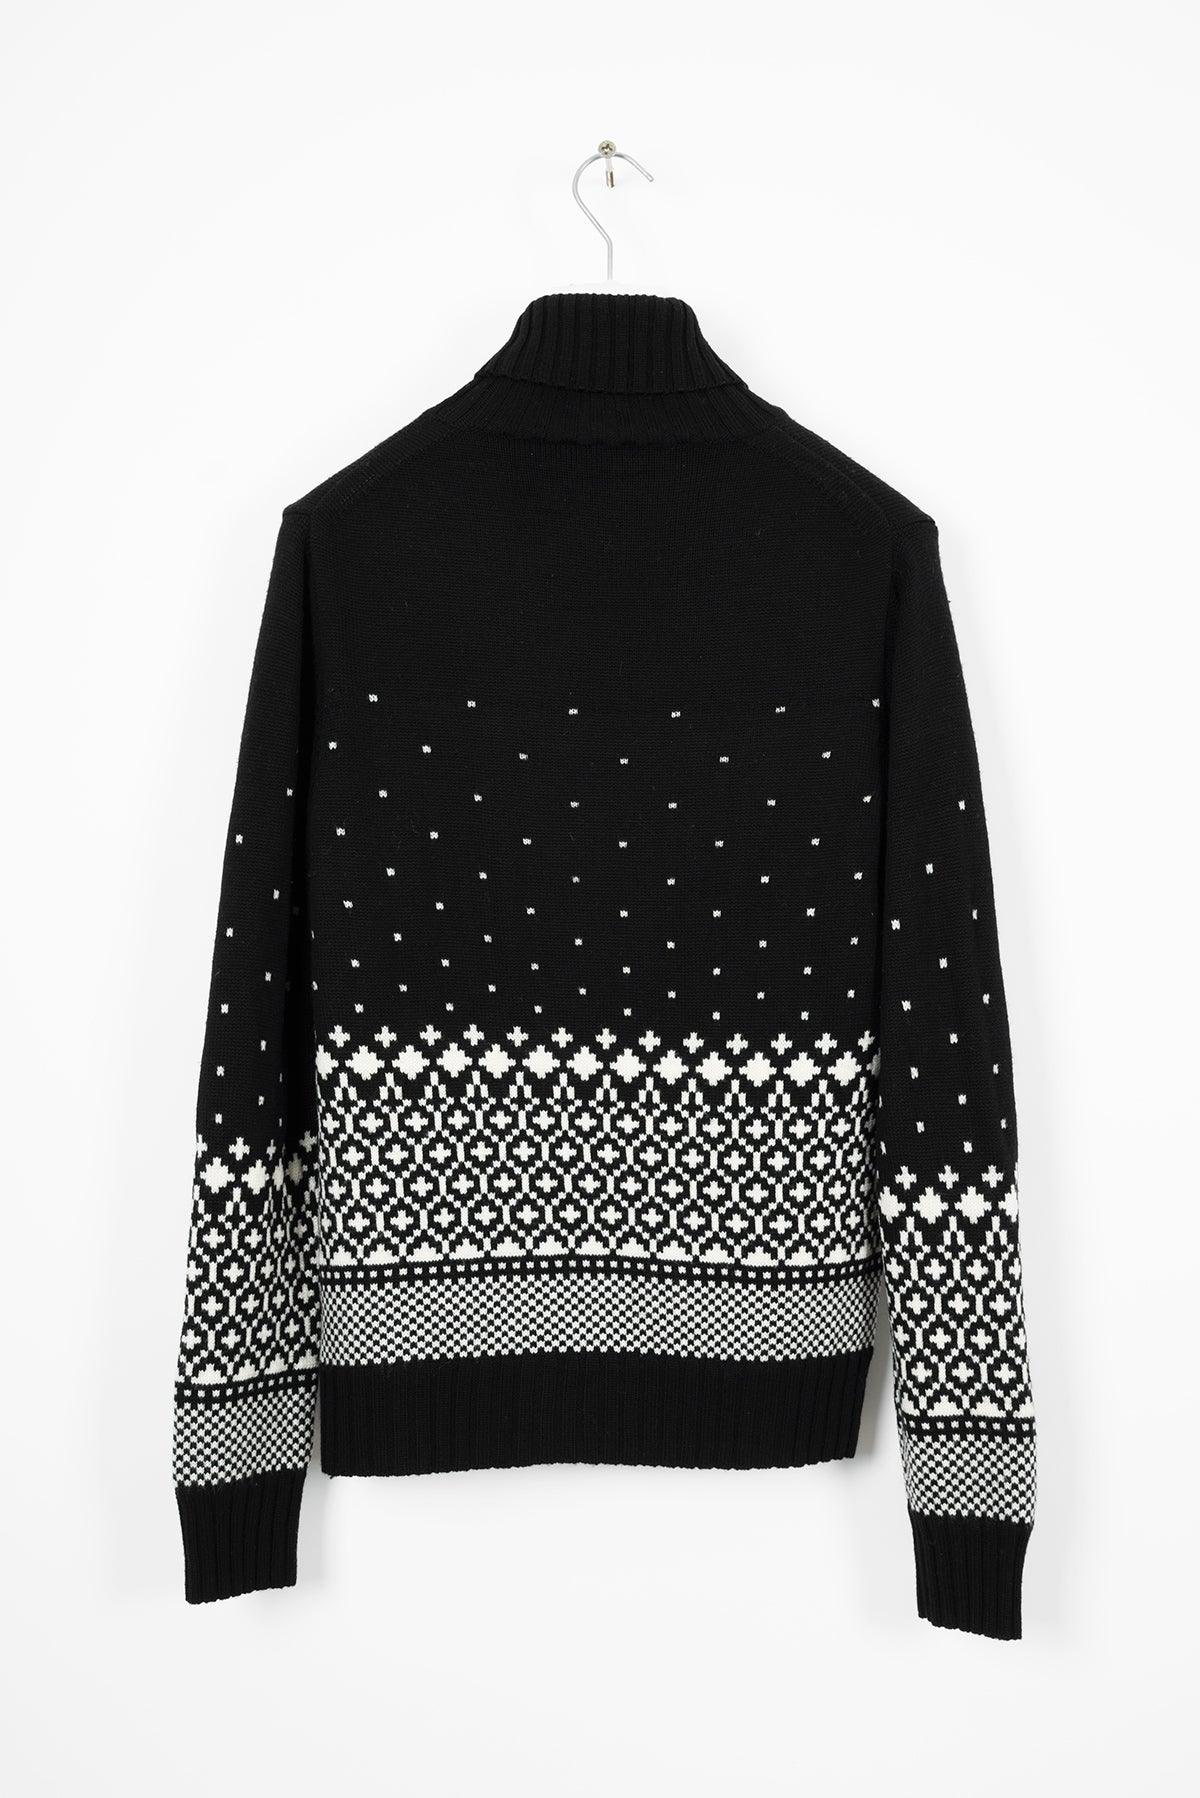 2007 A/W INTARSIA HIGHNECK WOOL SWEATER